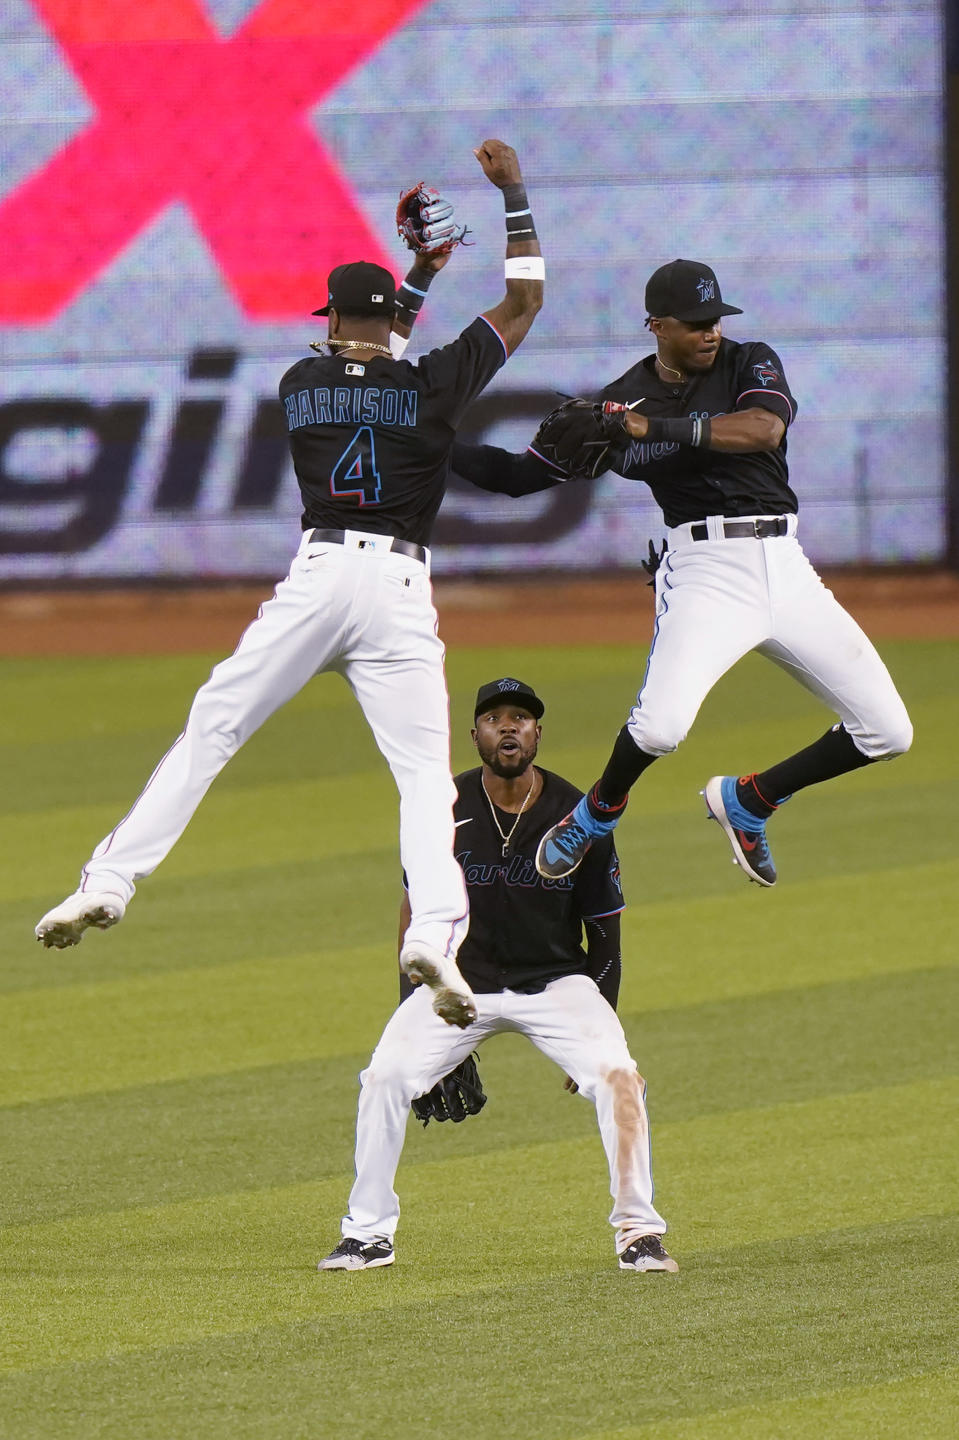 Miami Marlins' Starling Marte, center, watches as Monte Harrison, left, and Lewis Brinson, right, leap in the air as they celebrate the Marlins win over the Philadelphia Phillies in the second game of a baseball doubleheader, Sunday, Sept. 13, 2020, in Miami. (AP Photo/Wilfredo Lee)